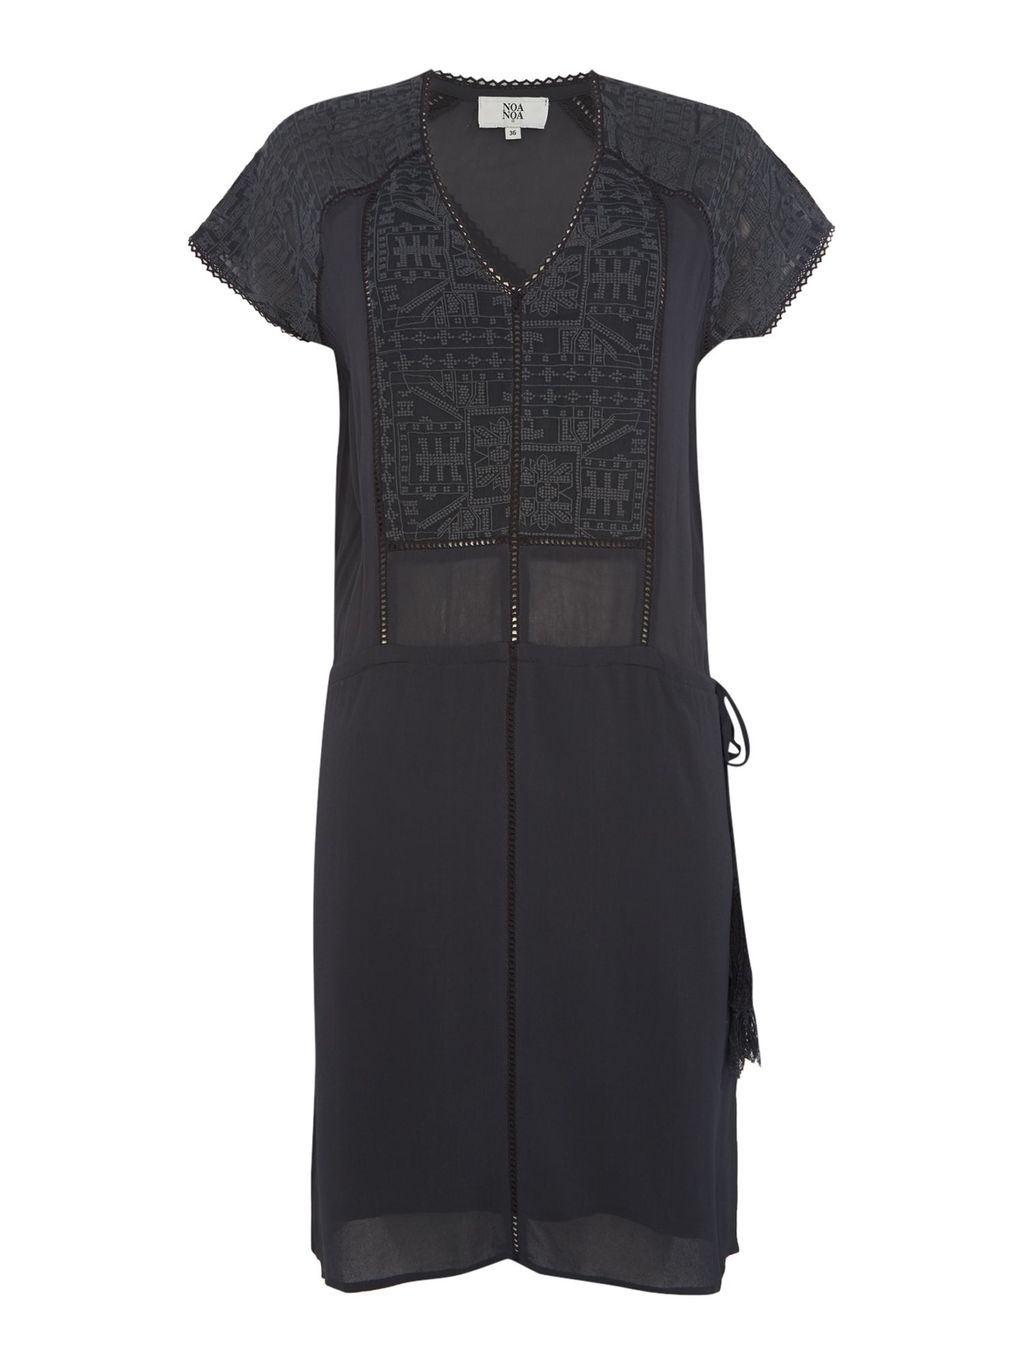 Short Sleeve Dress, Grey - style: shift; neckline: round neck; pattern: plain; predominant colour: black; occasions: evening; length: just above the knee; fit: body skimming; fibres: viscose/rayon - 100%; sleeve length: short sleeve; sleeve style: standard; pattern type: fabric; texture group: other - light to midweight; embellishment: lace; season: s/s 2016; wardrobe: event; embellishment location: bust, shoulder